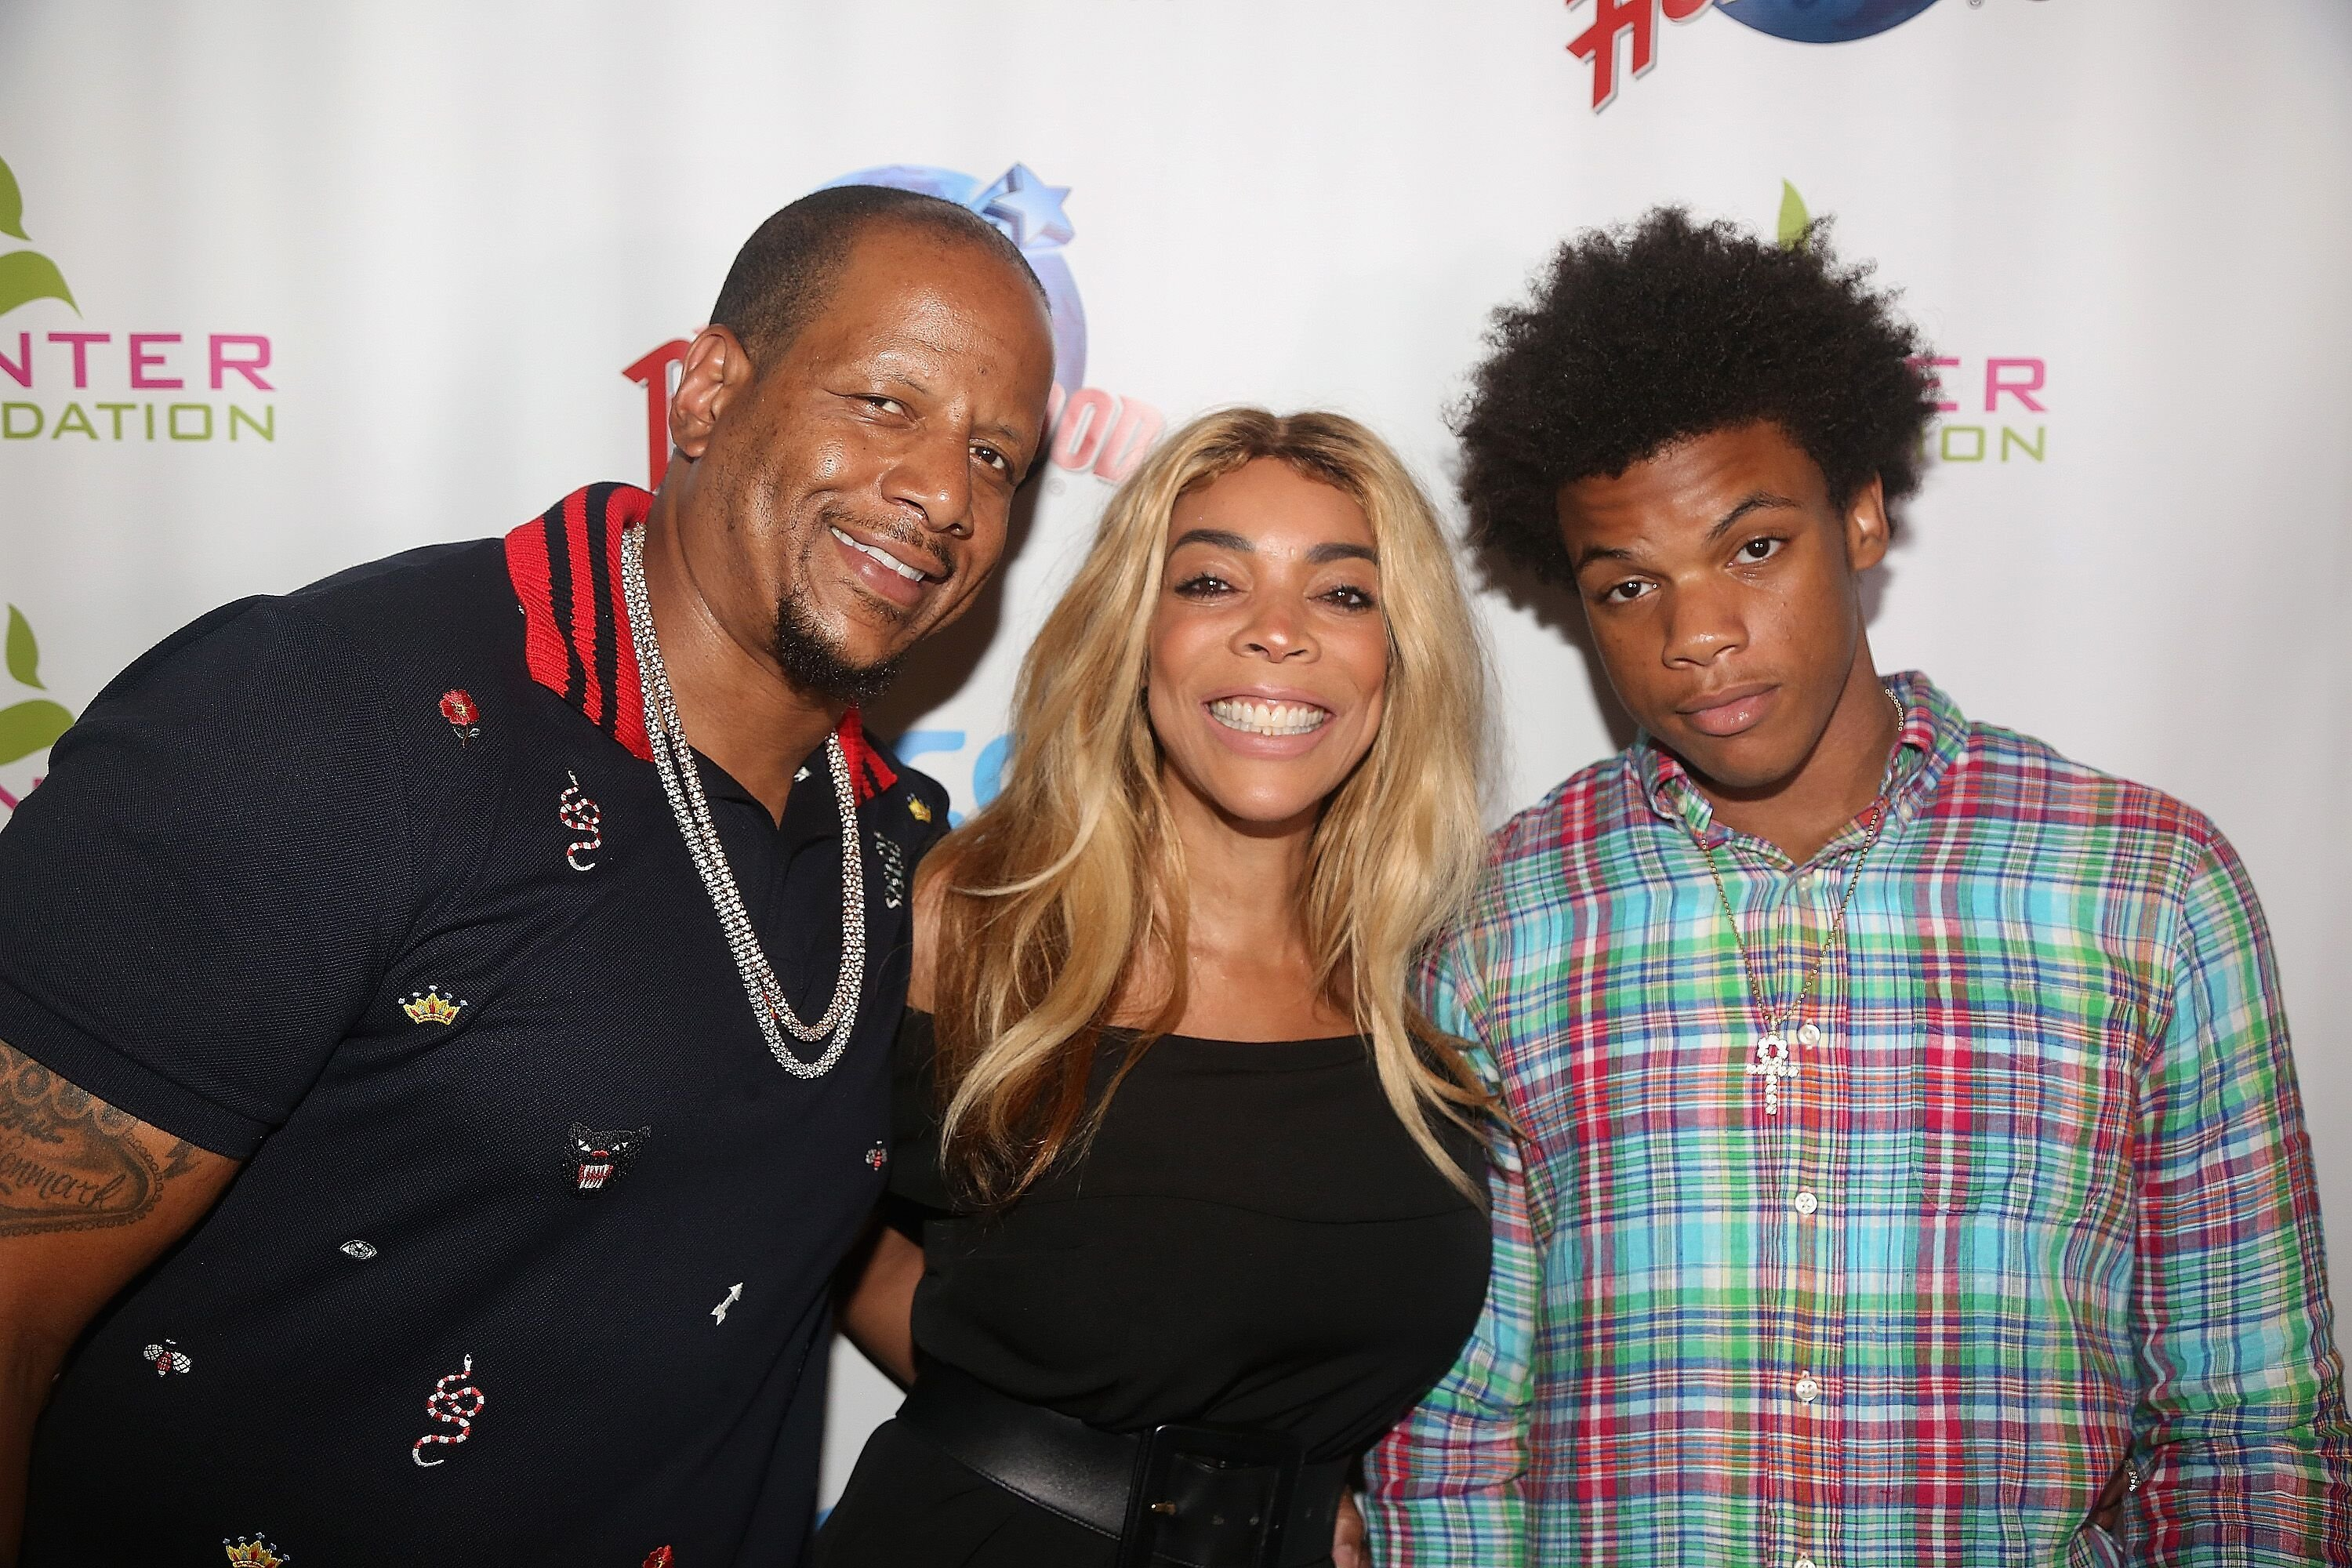 Wendy Williams, her son Kevin, and future ex-husband Kevin Hunter/ Source: Getty Images